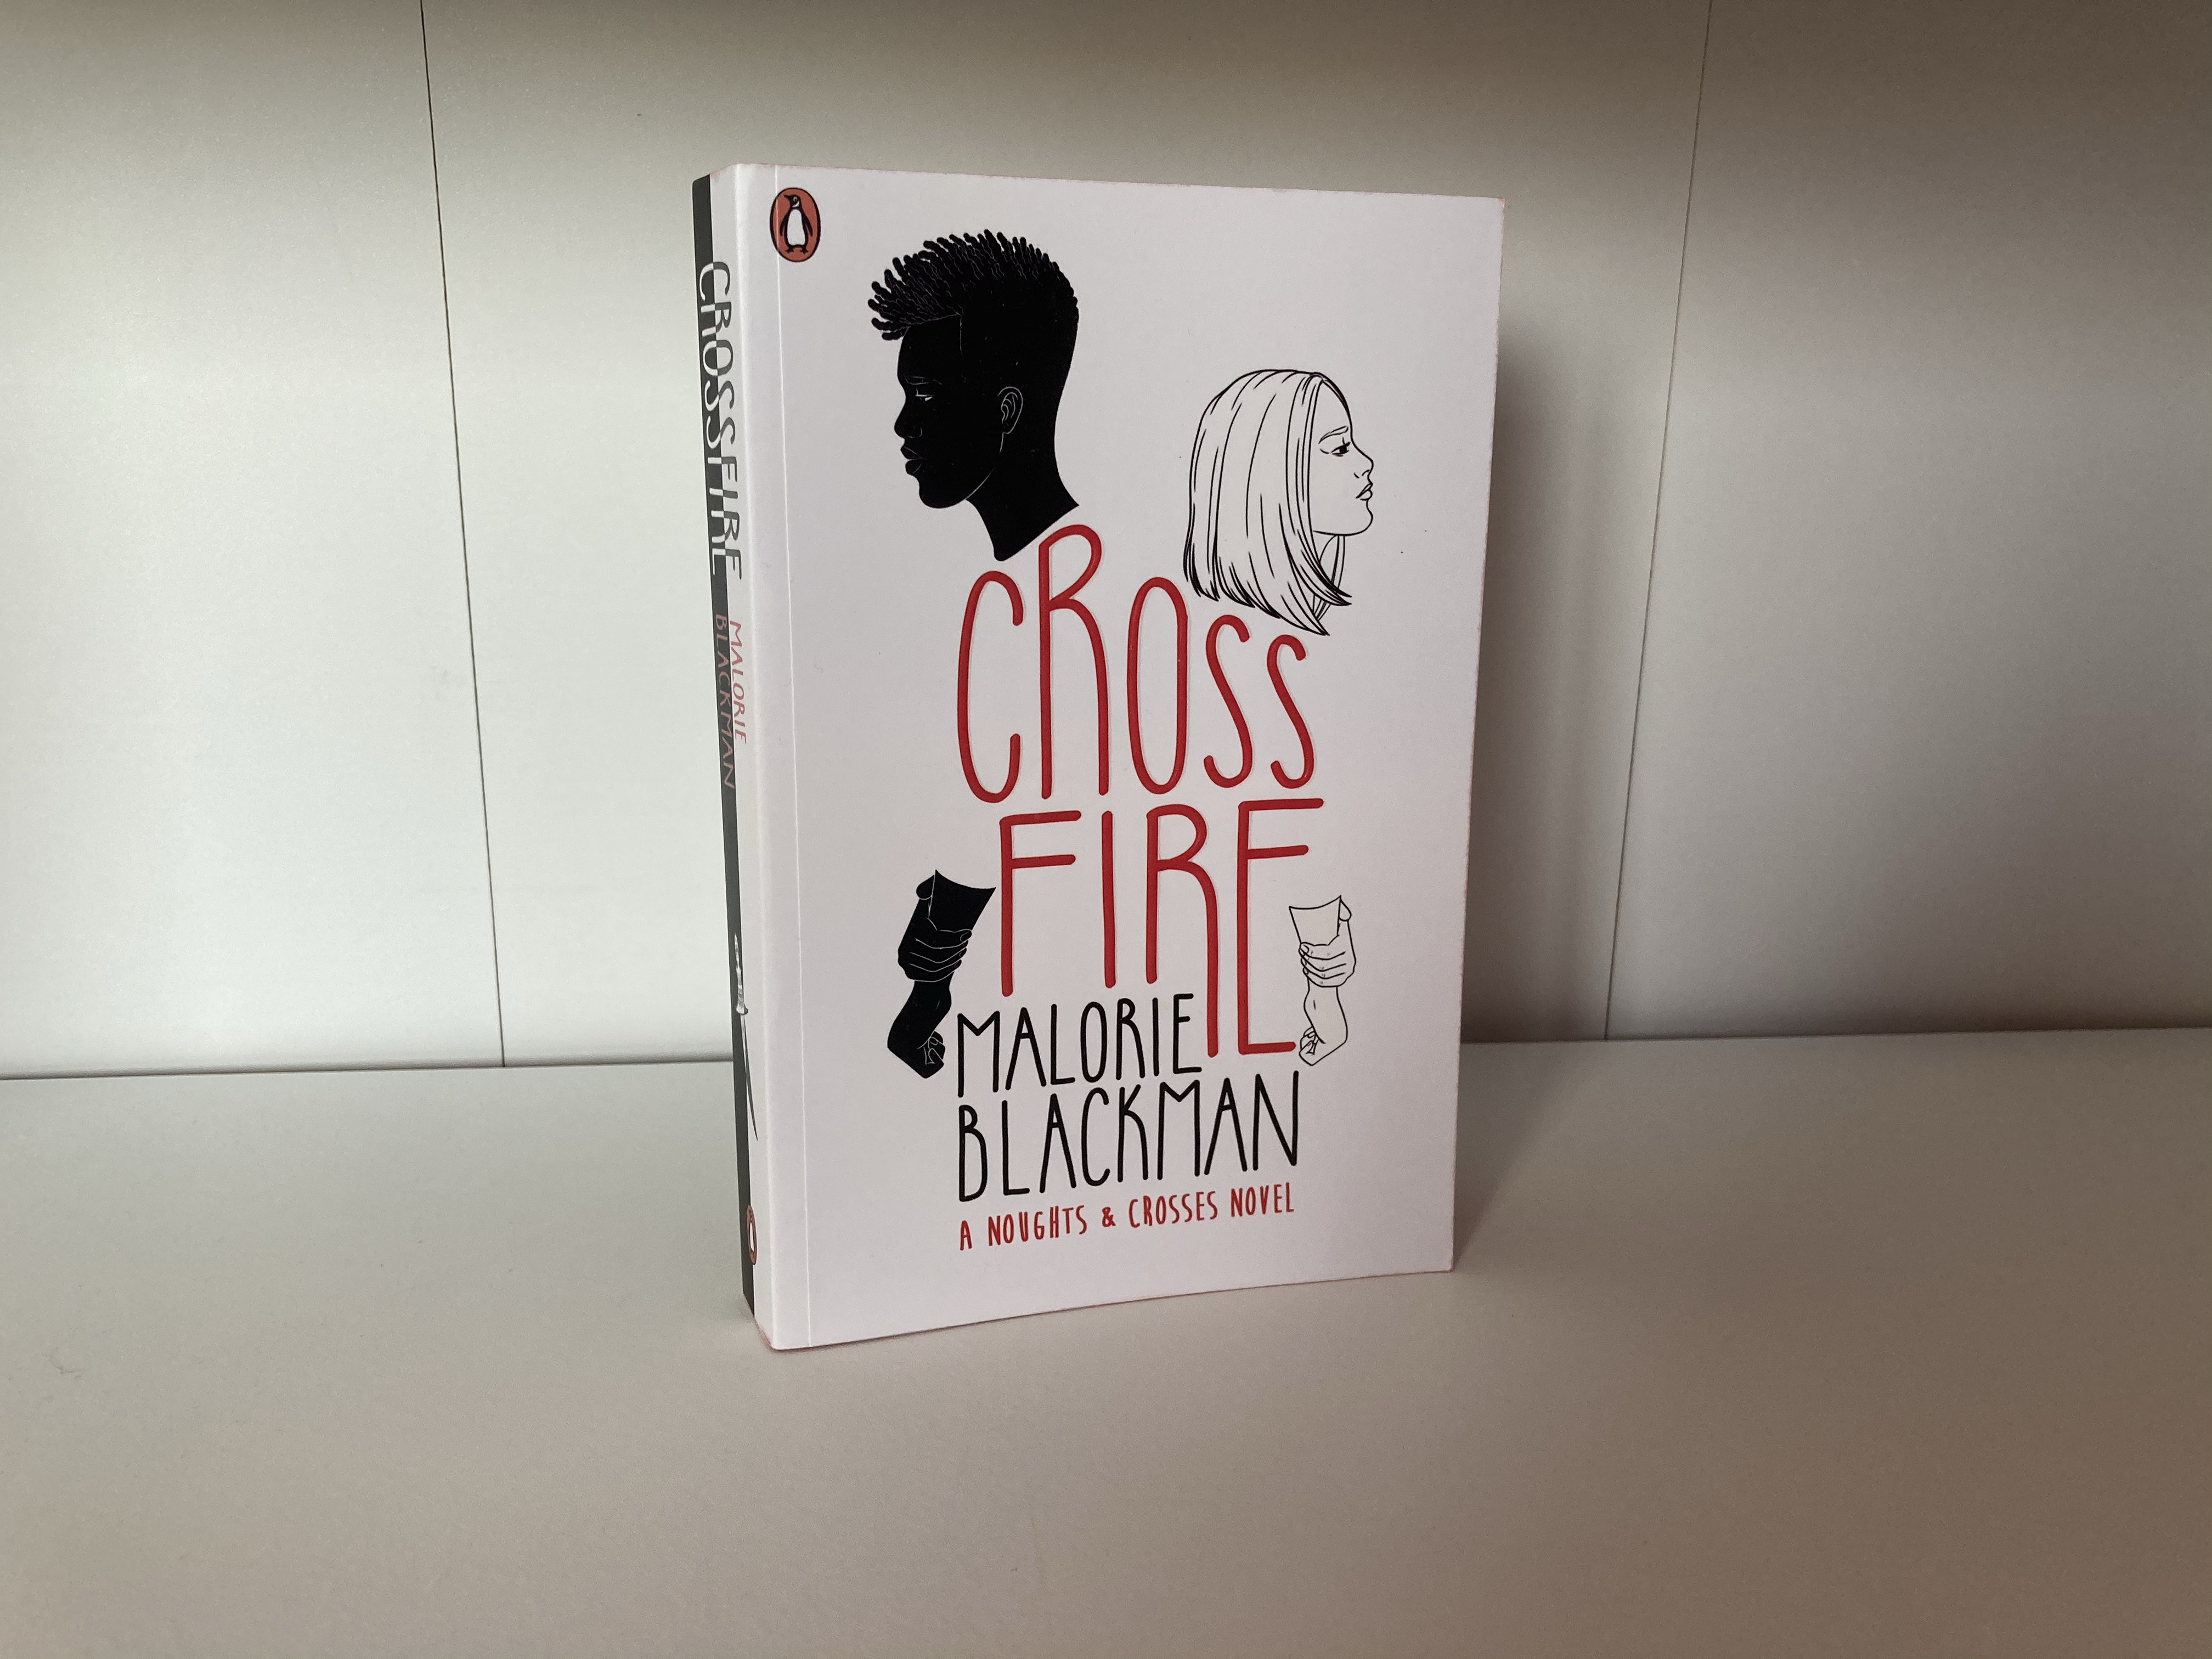 The cover of Crossfire by Malorie Blackman